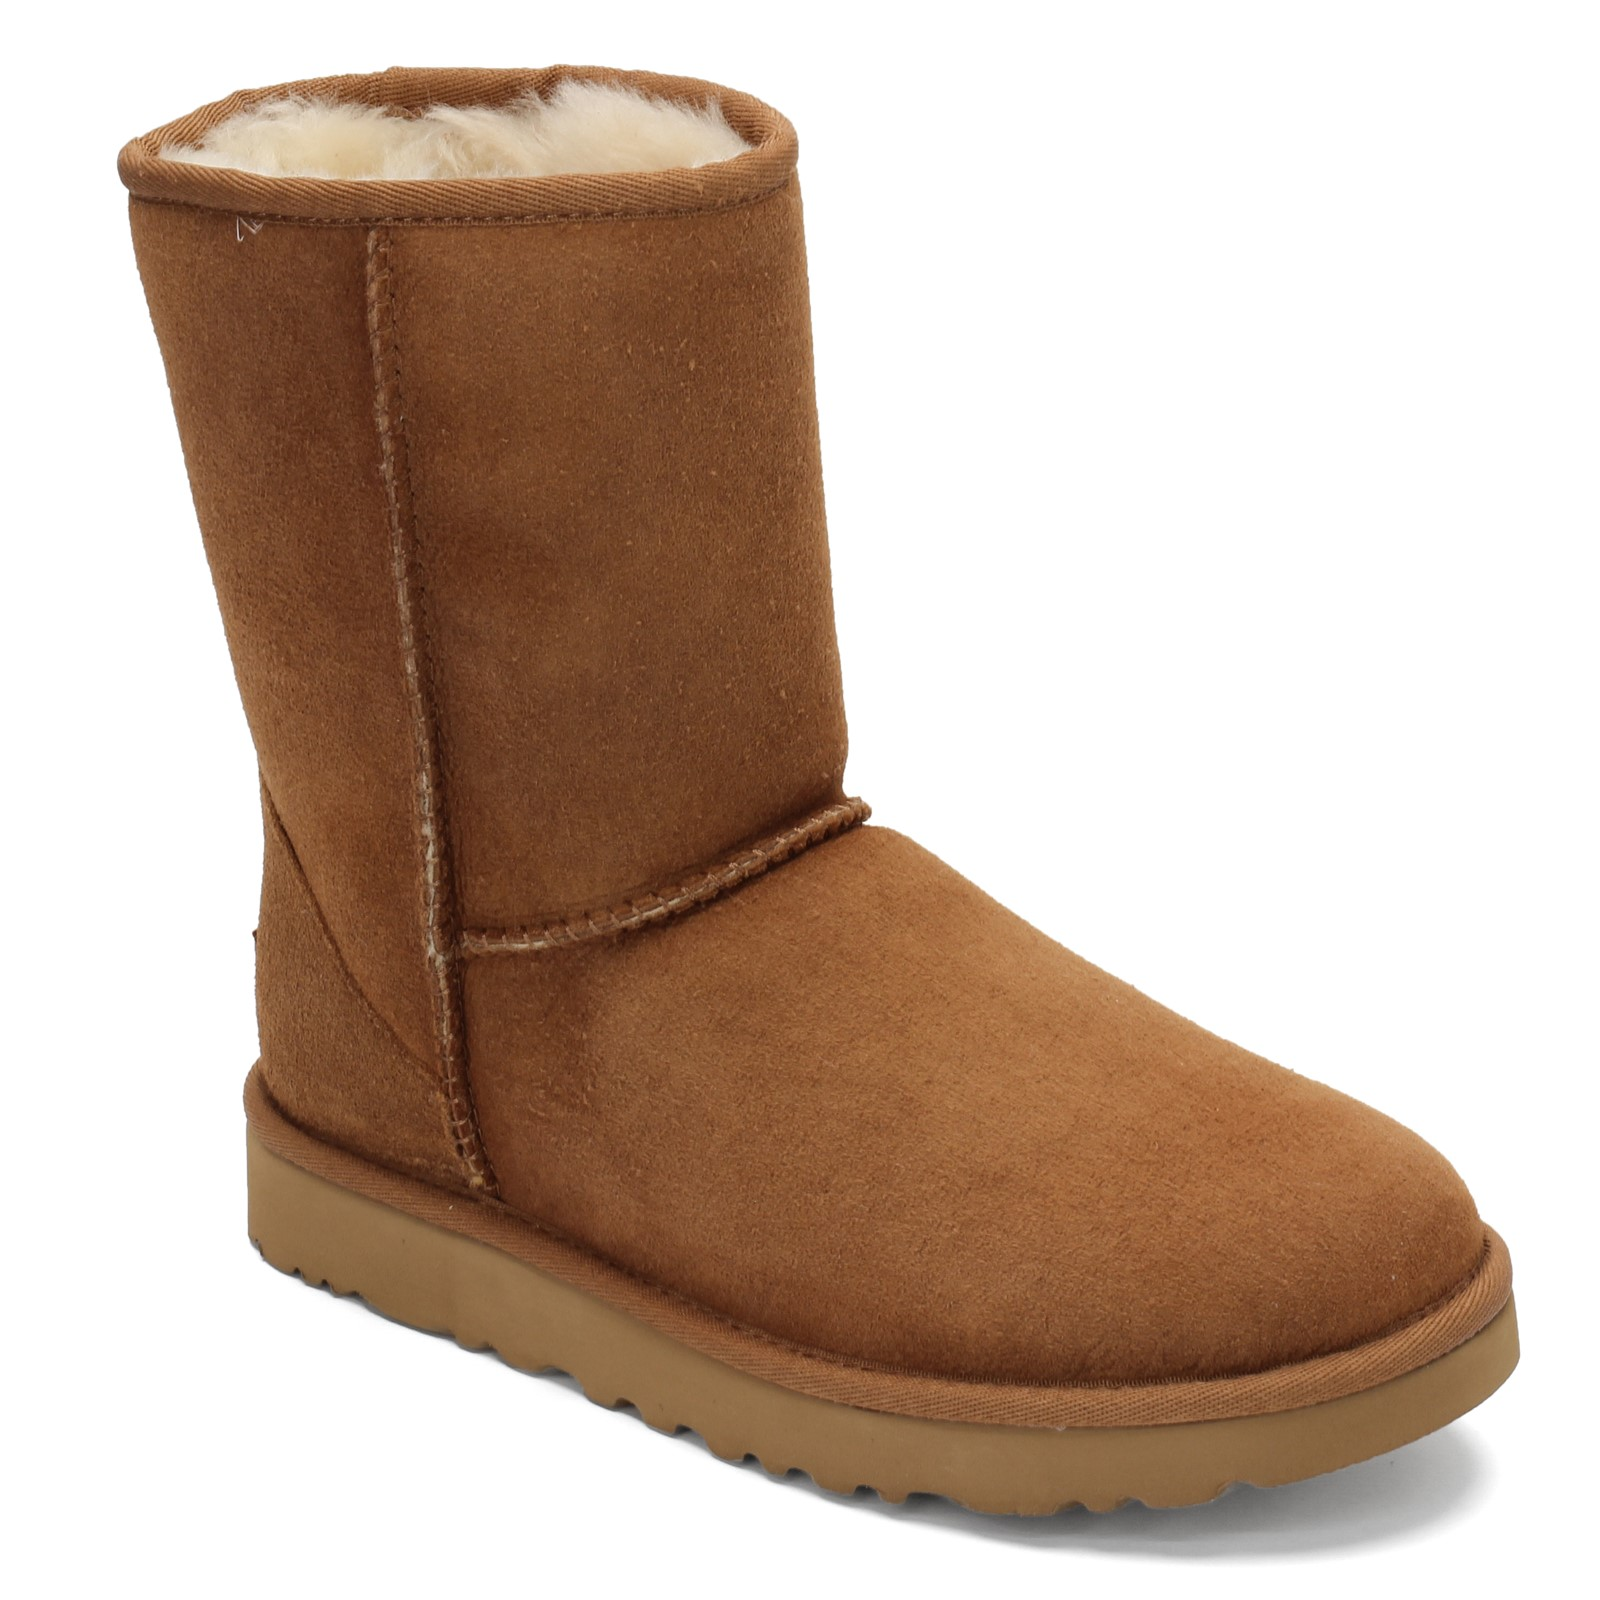 good selling amazing price best value Women's Ugg, Classic Short II Tasman Braid Boot | Peltz Shoes